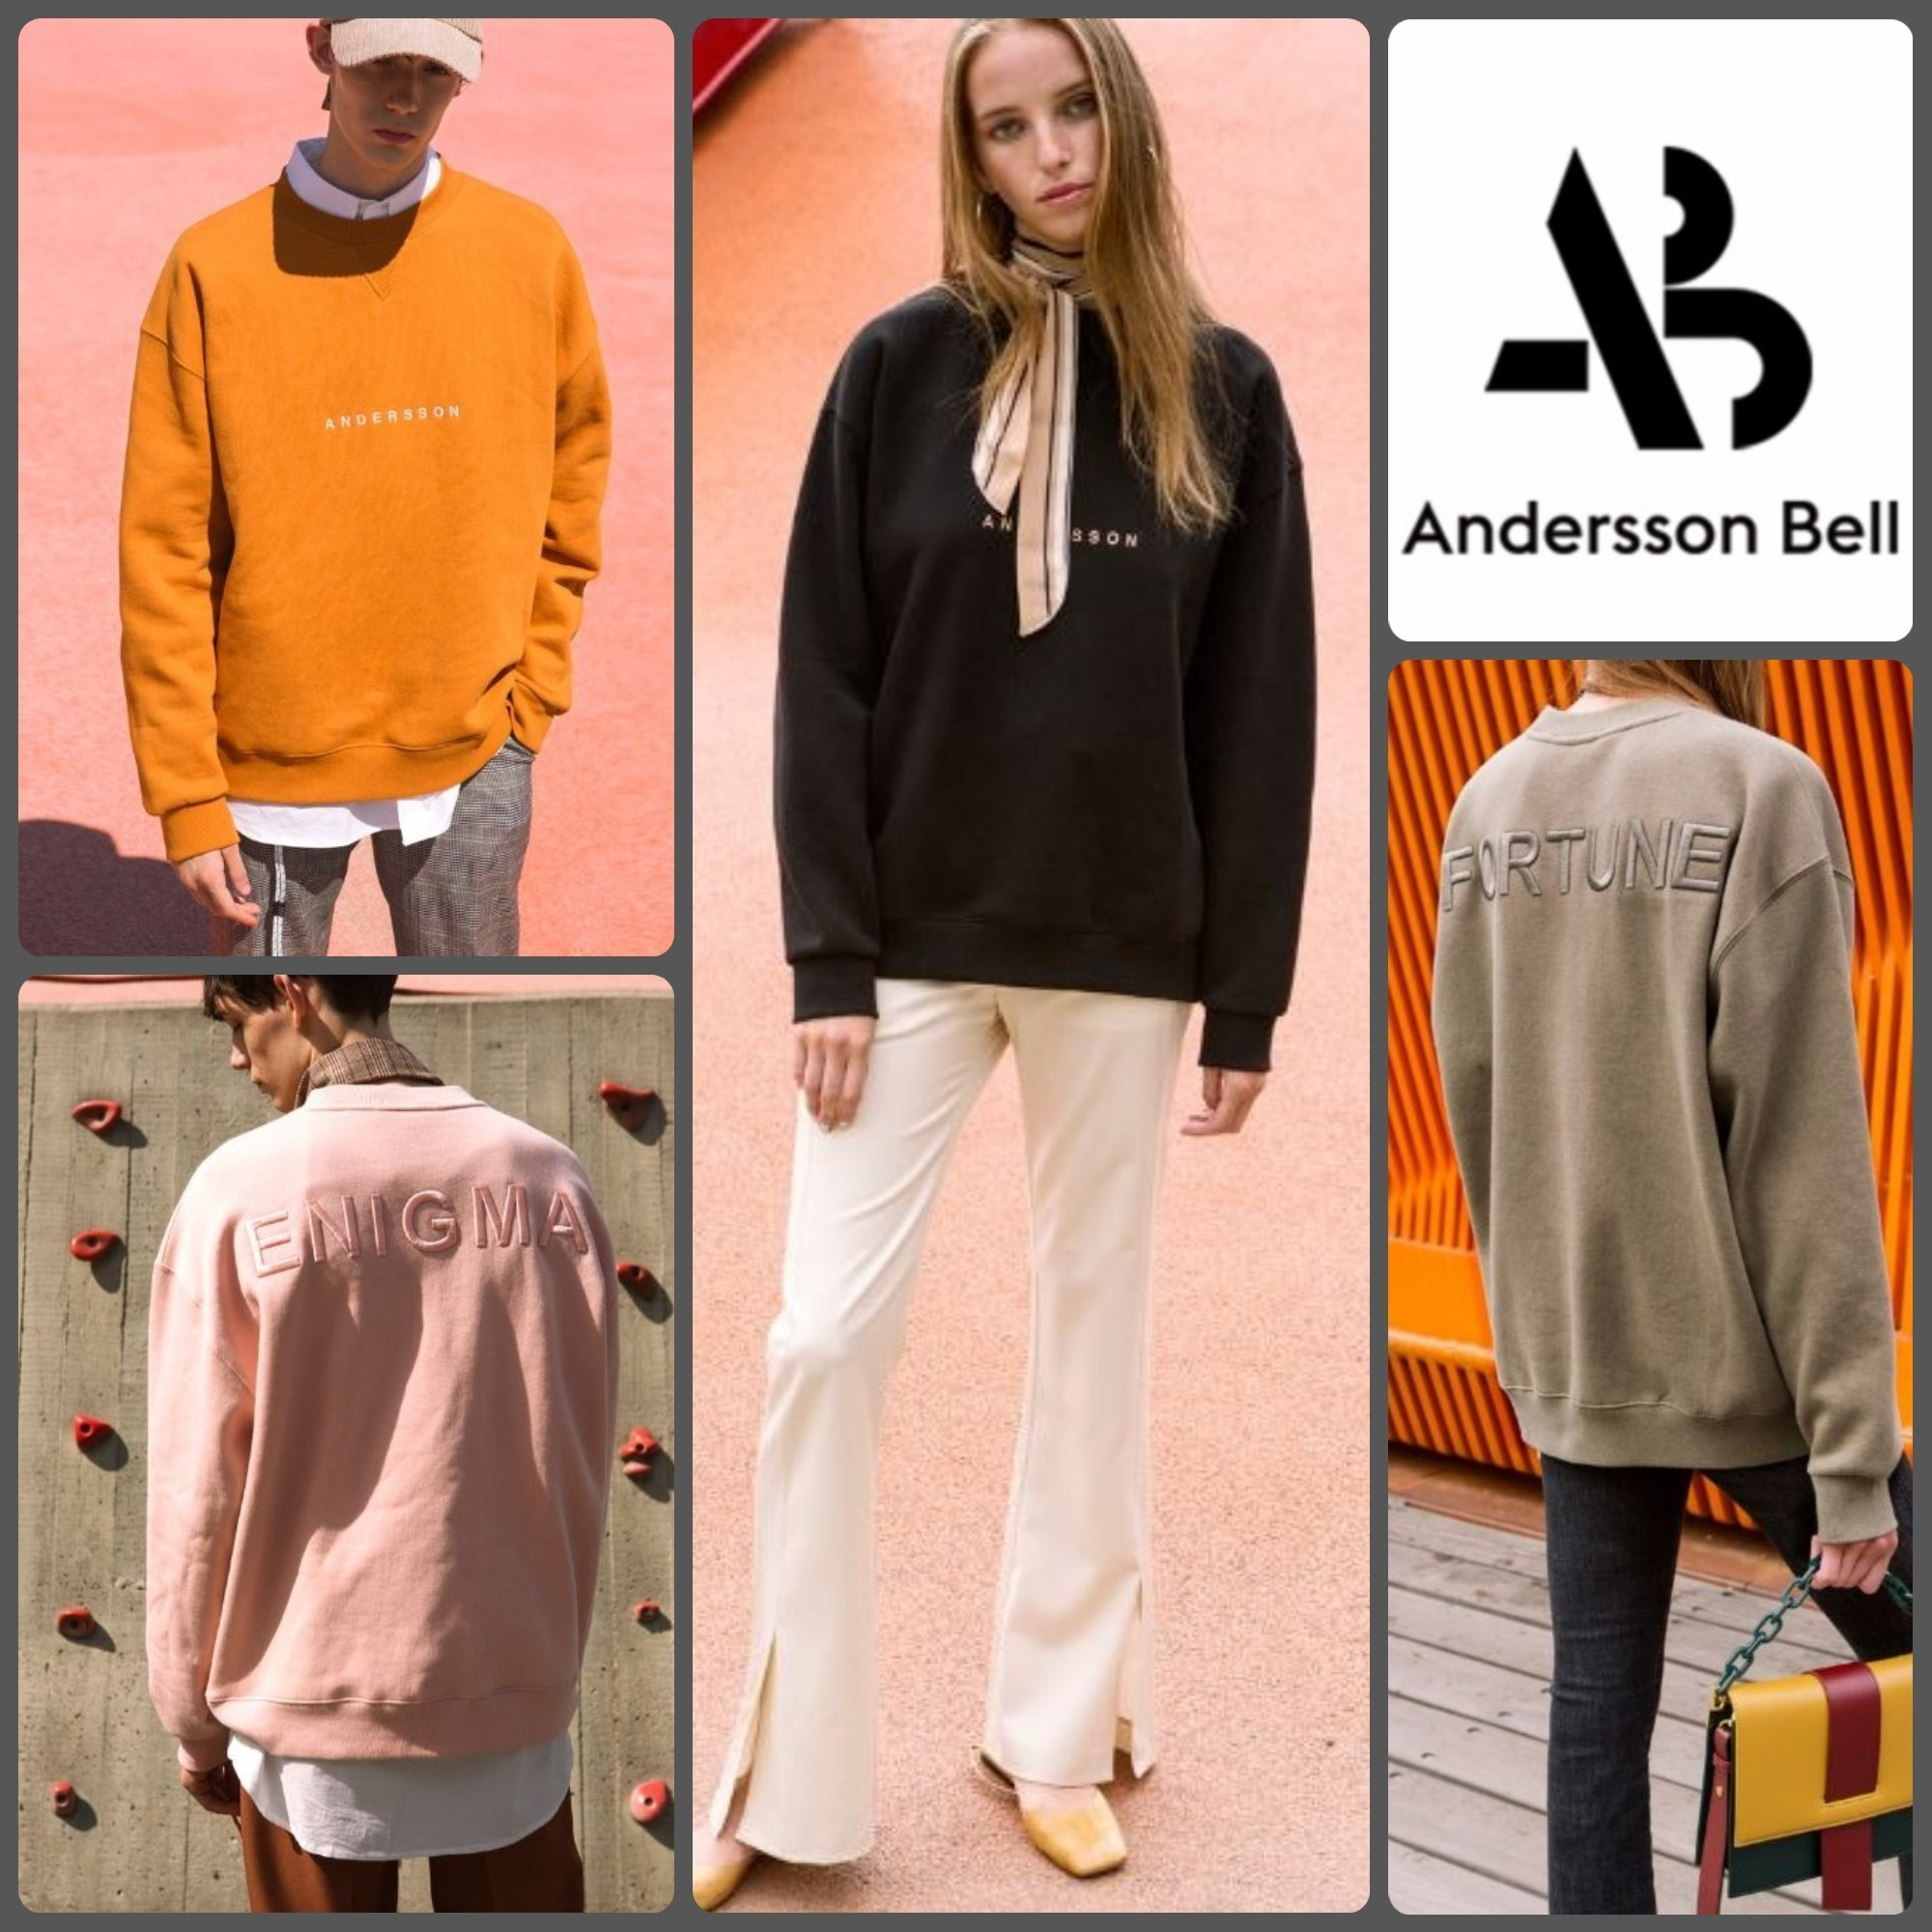 【ANDERSSON BELL】正規品★SIGNATURE スウェット 4色/追跡付